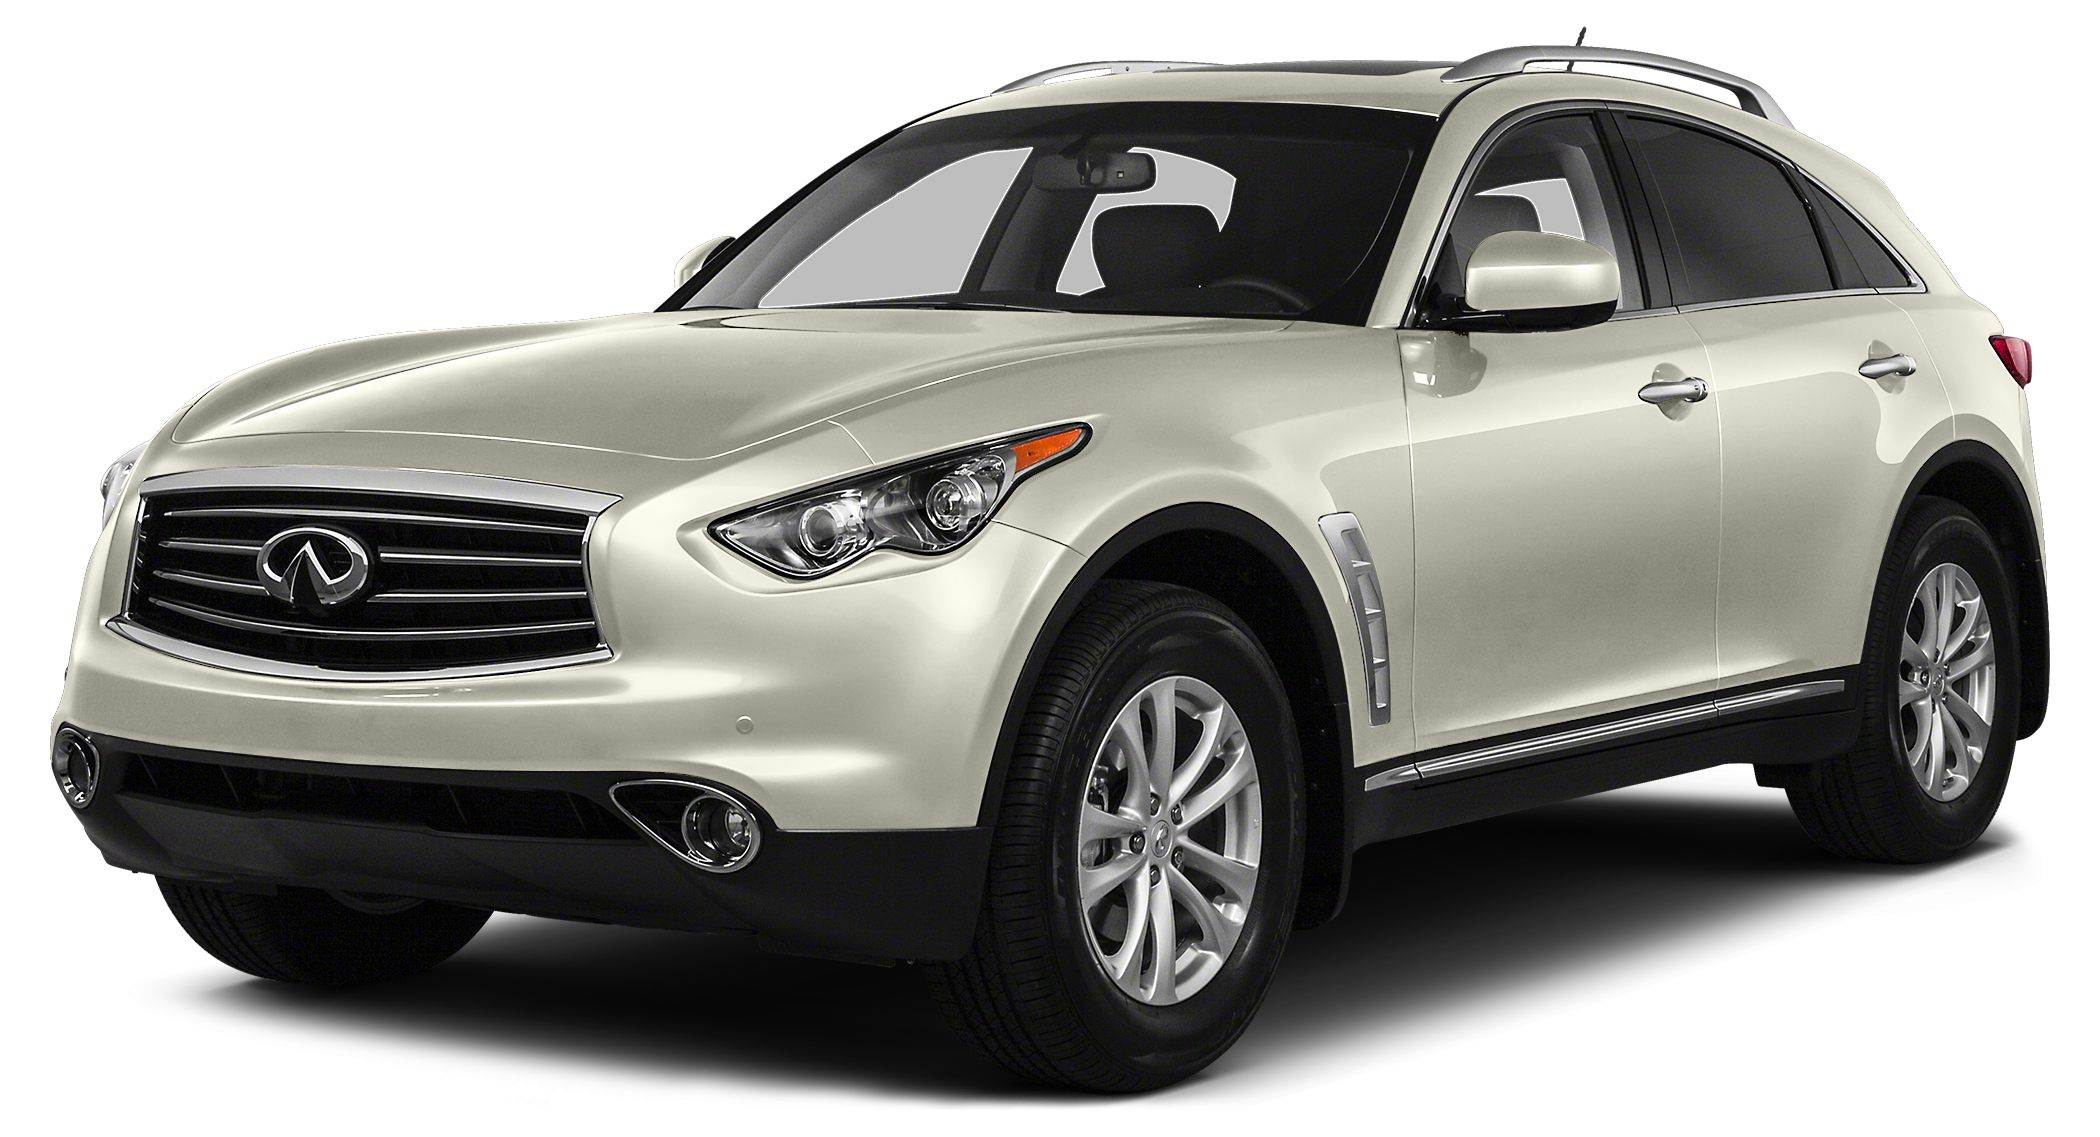 2013 Infiniti FX37 Base Visit Best Auto Group online at bronxbestautocom to see more pictures of